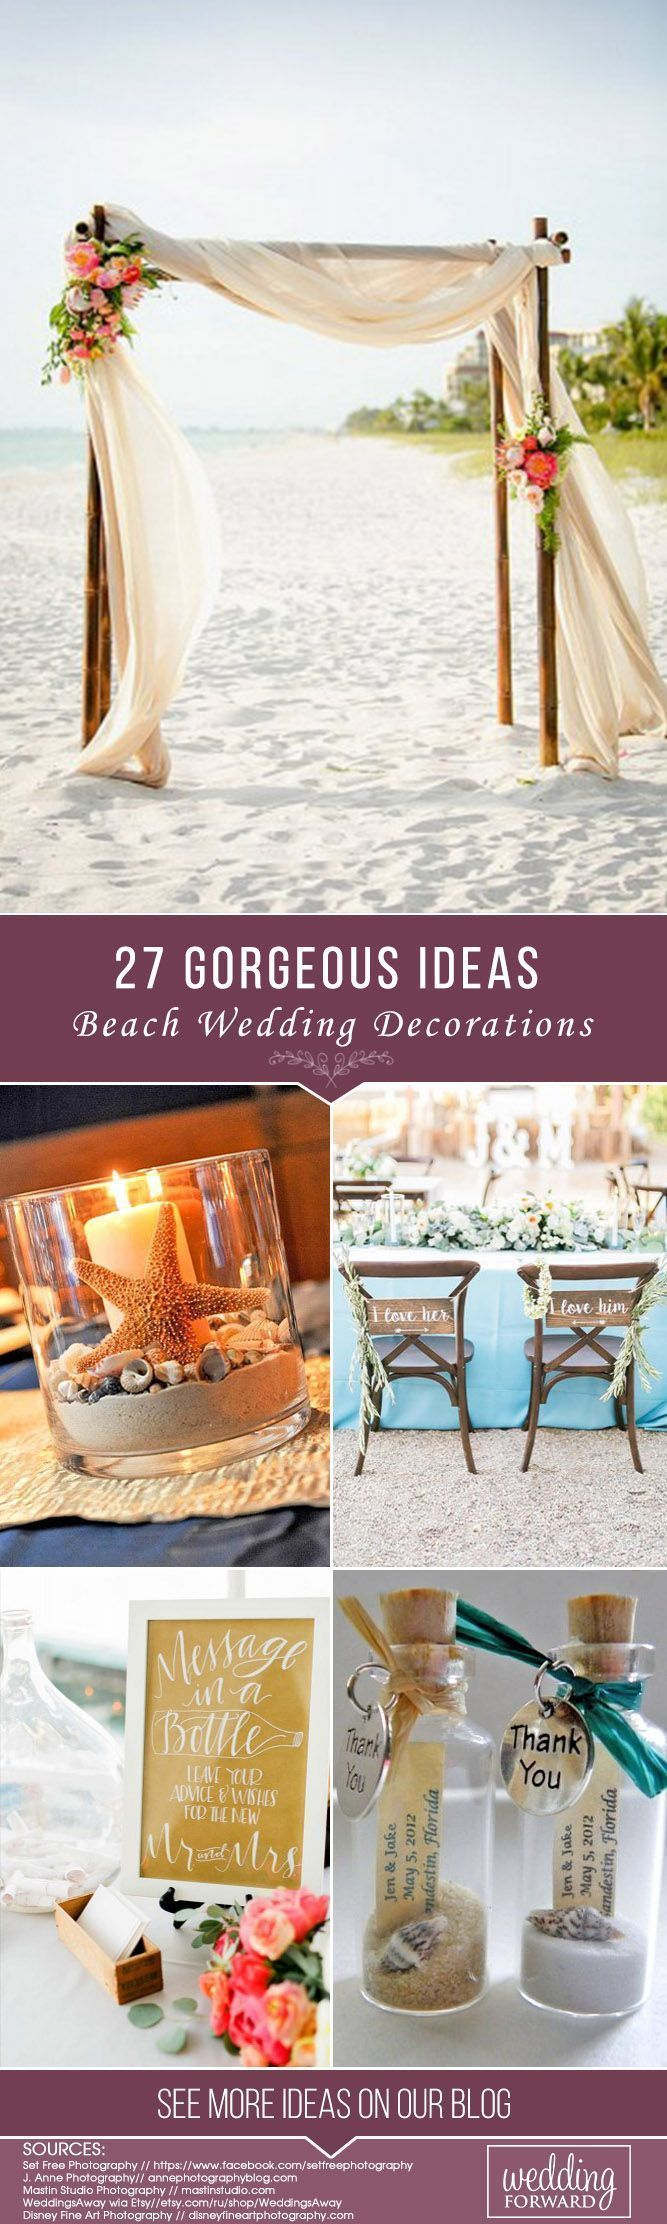 Beach wedding decoration ideas diy   Gorgeous Beach Wedding Decoration Ideas  Beach weddings donut